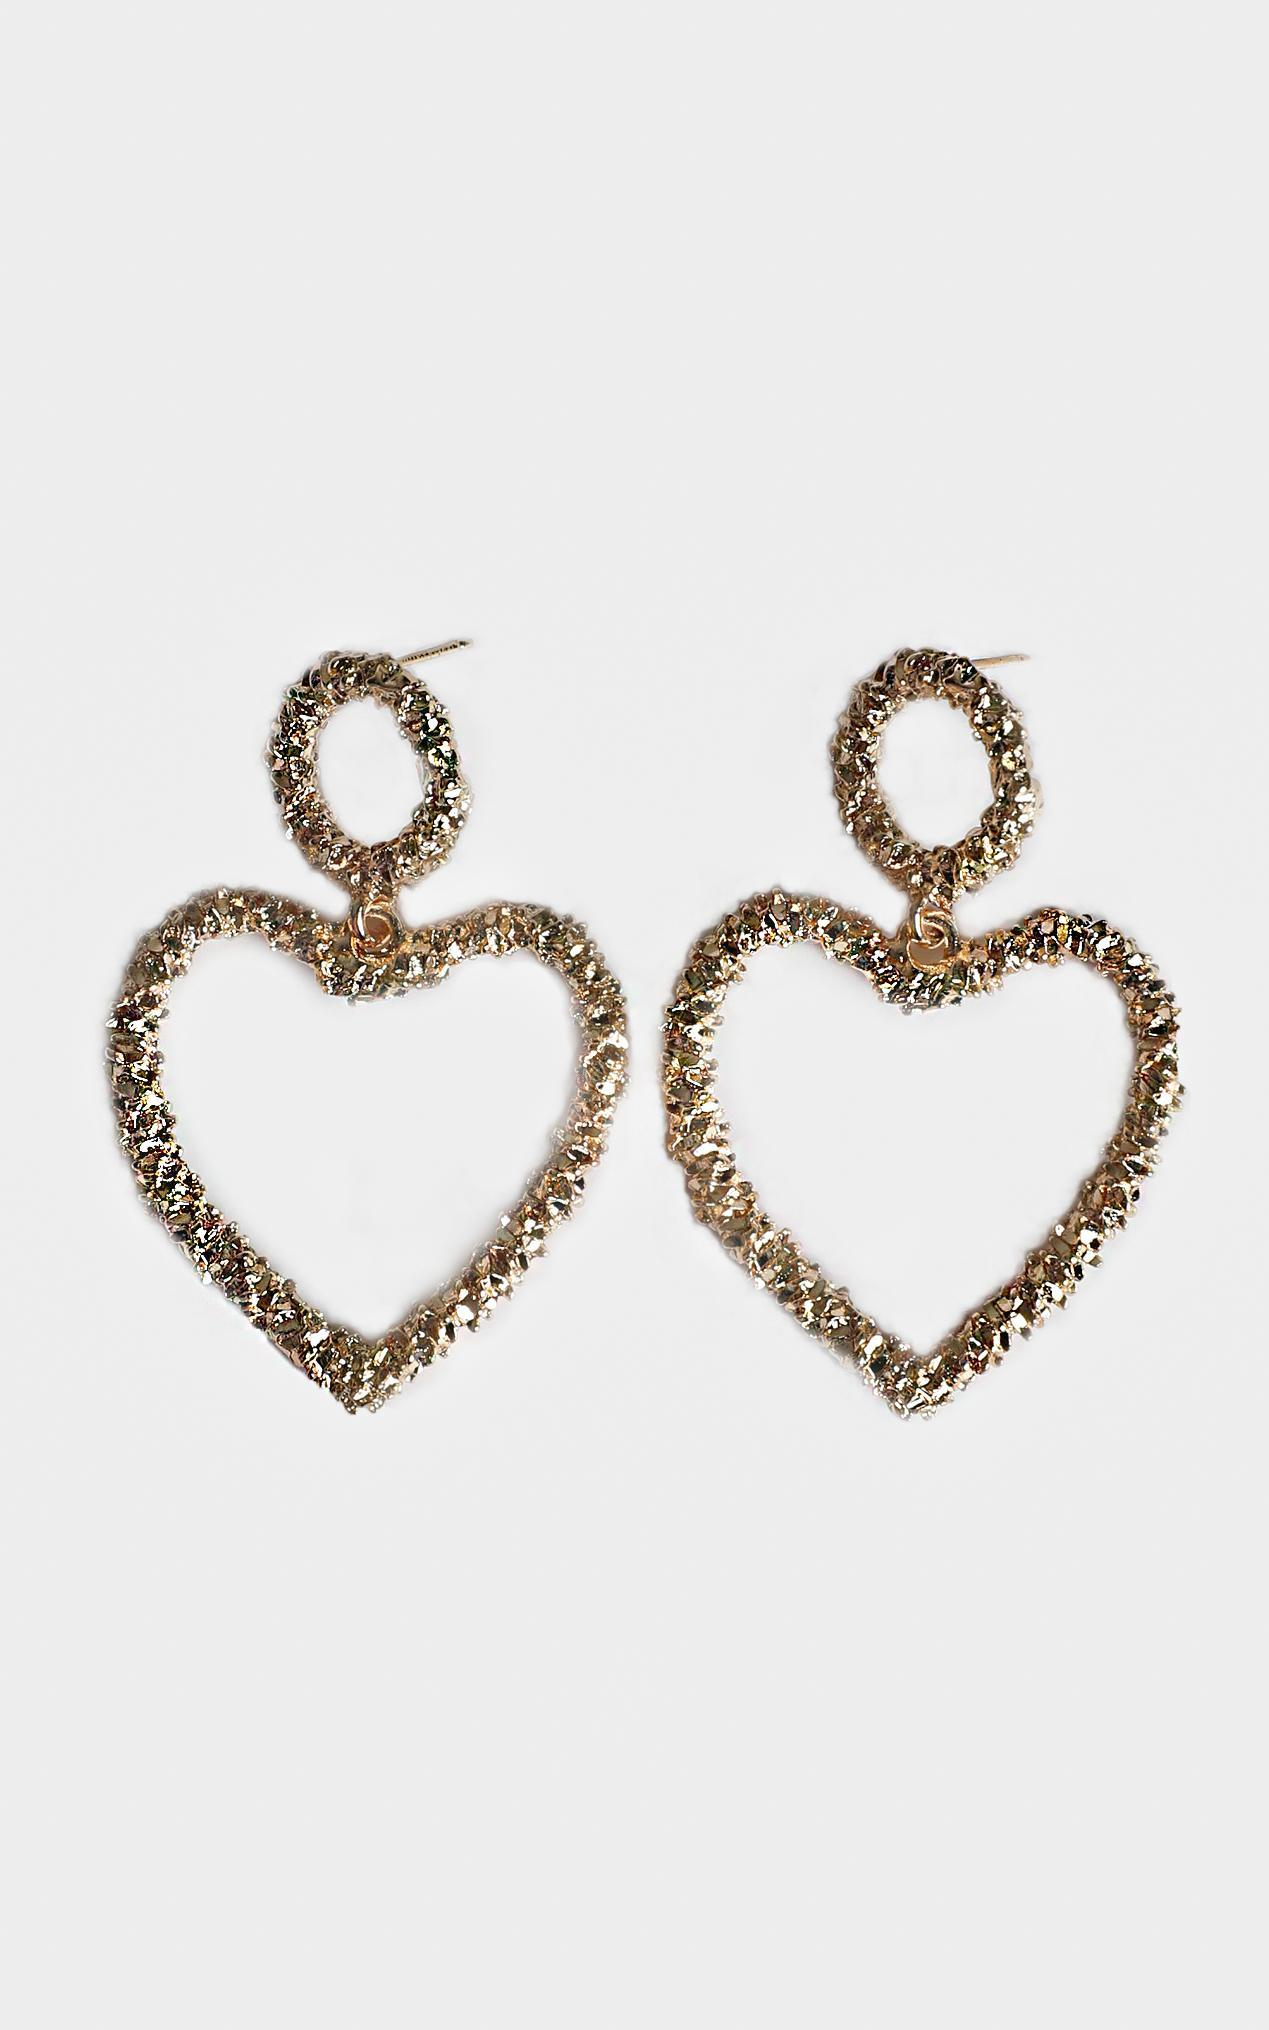 Distant Romance Heart Earrings In Gold, , hi-res image number null